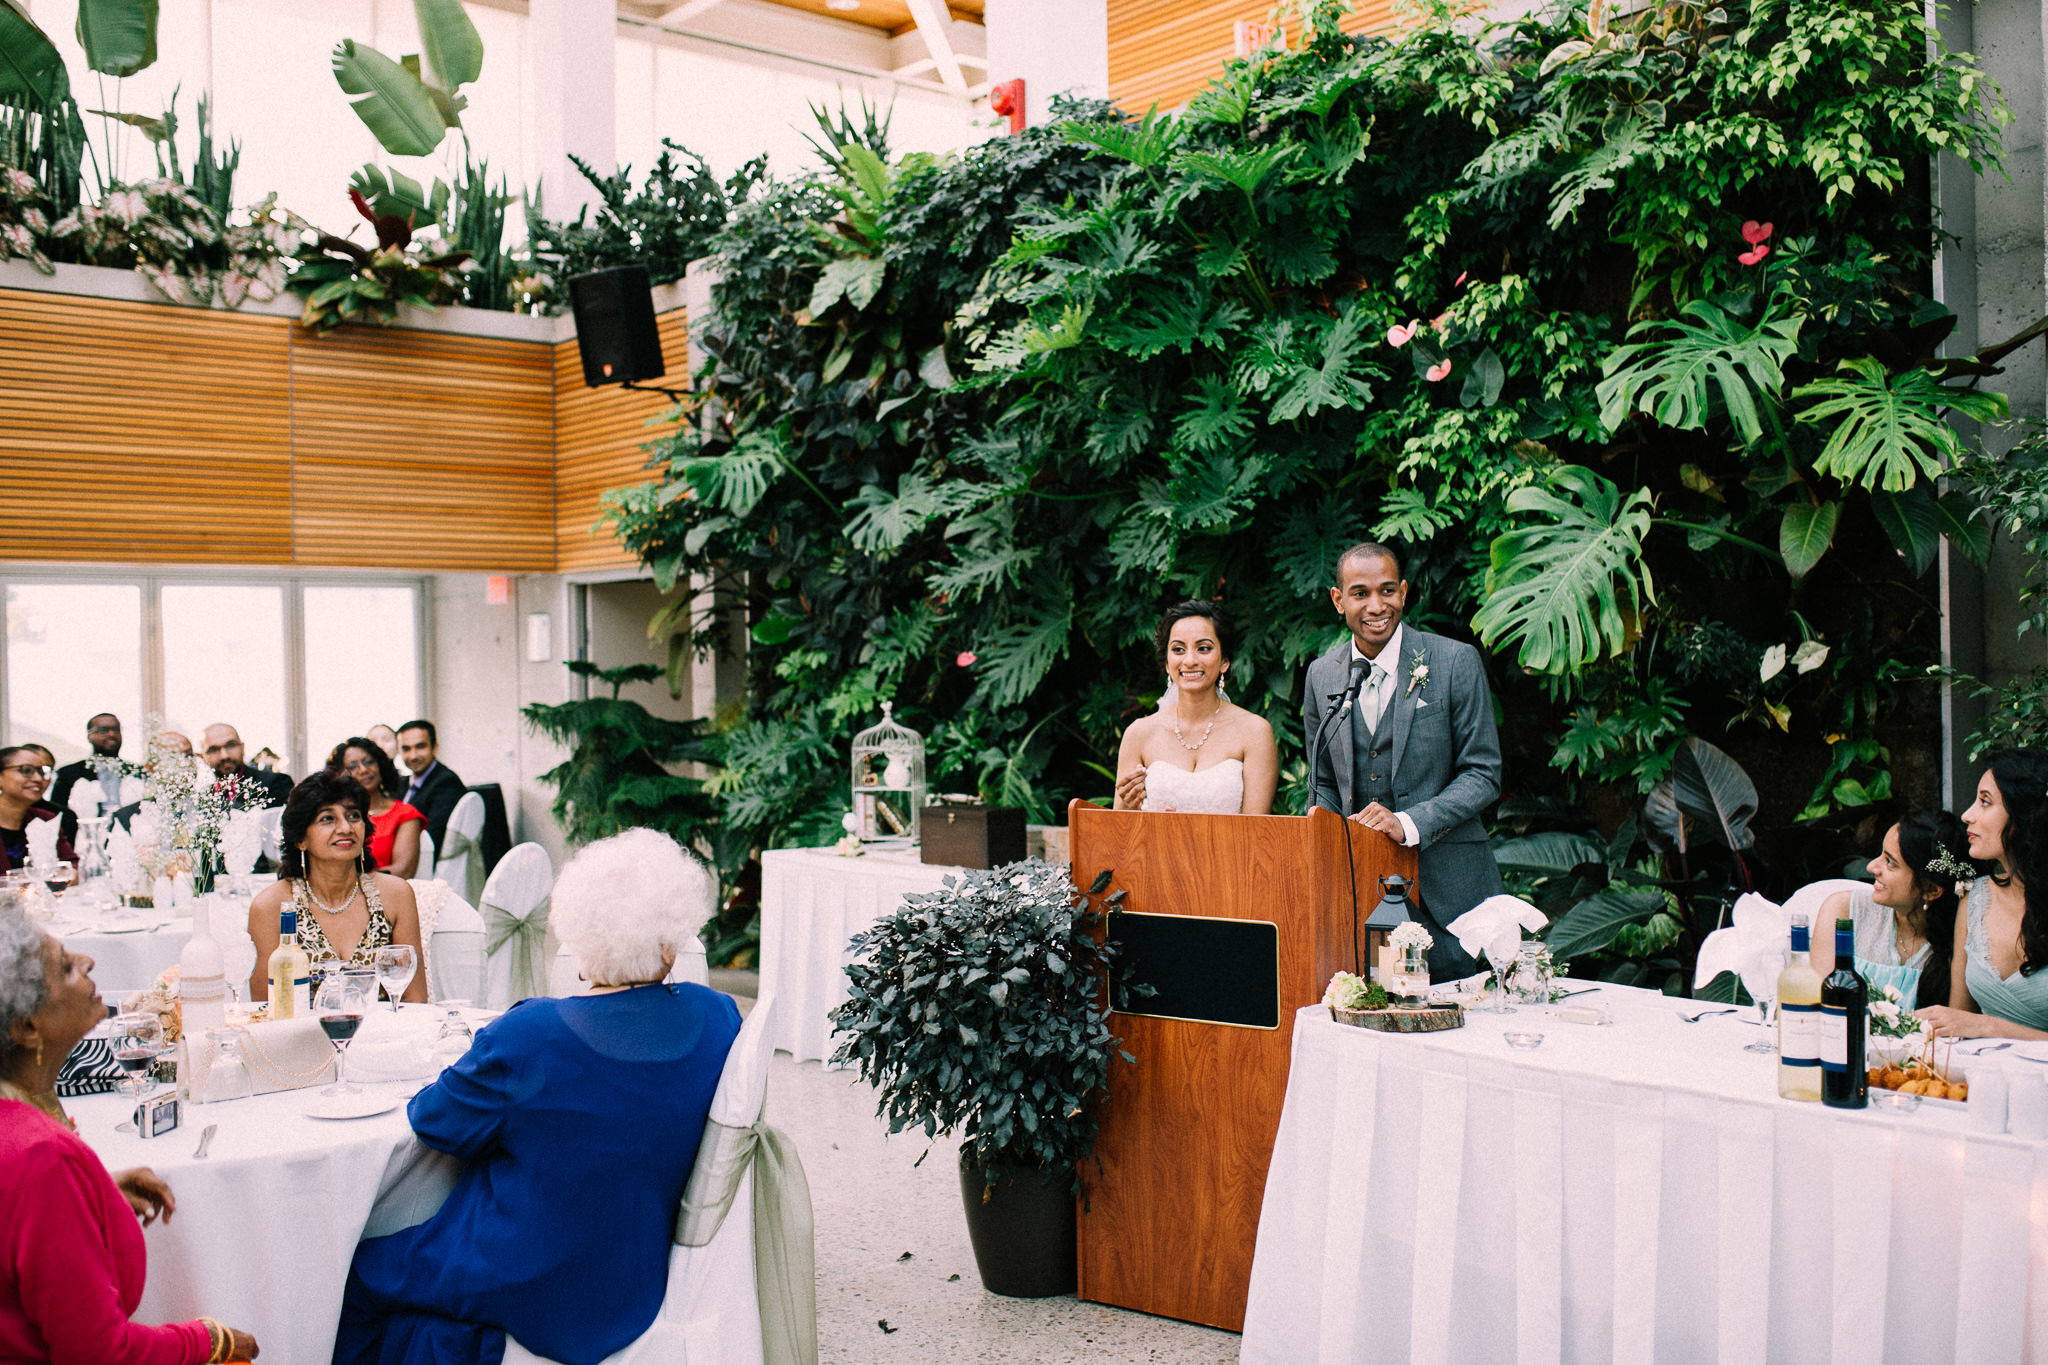 Burlington Fall wedding at Royal Botanical Gardens by Max Wong Photo (55)